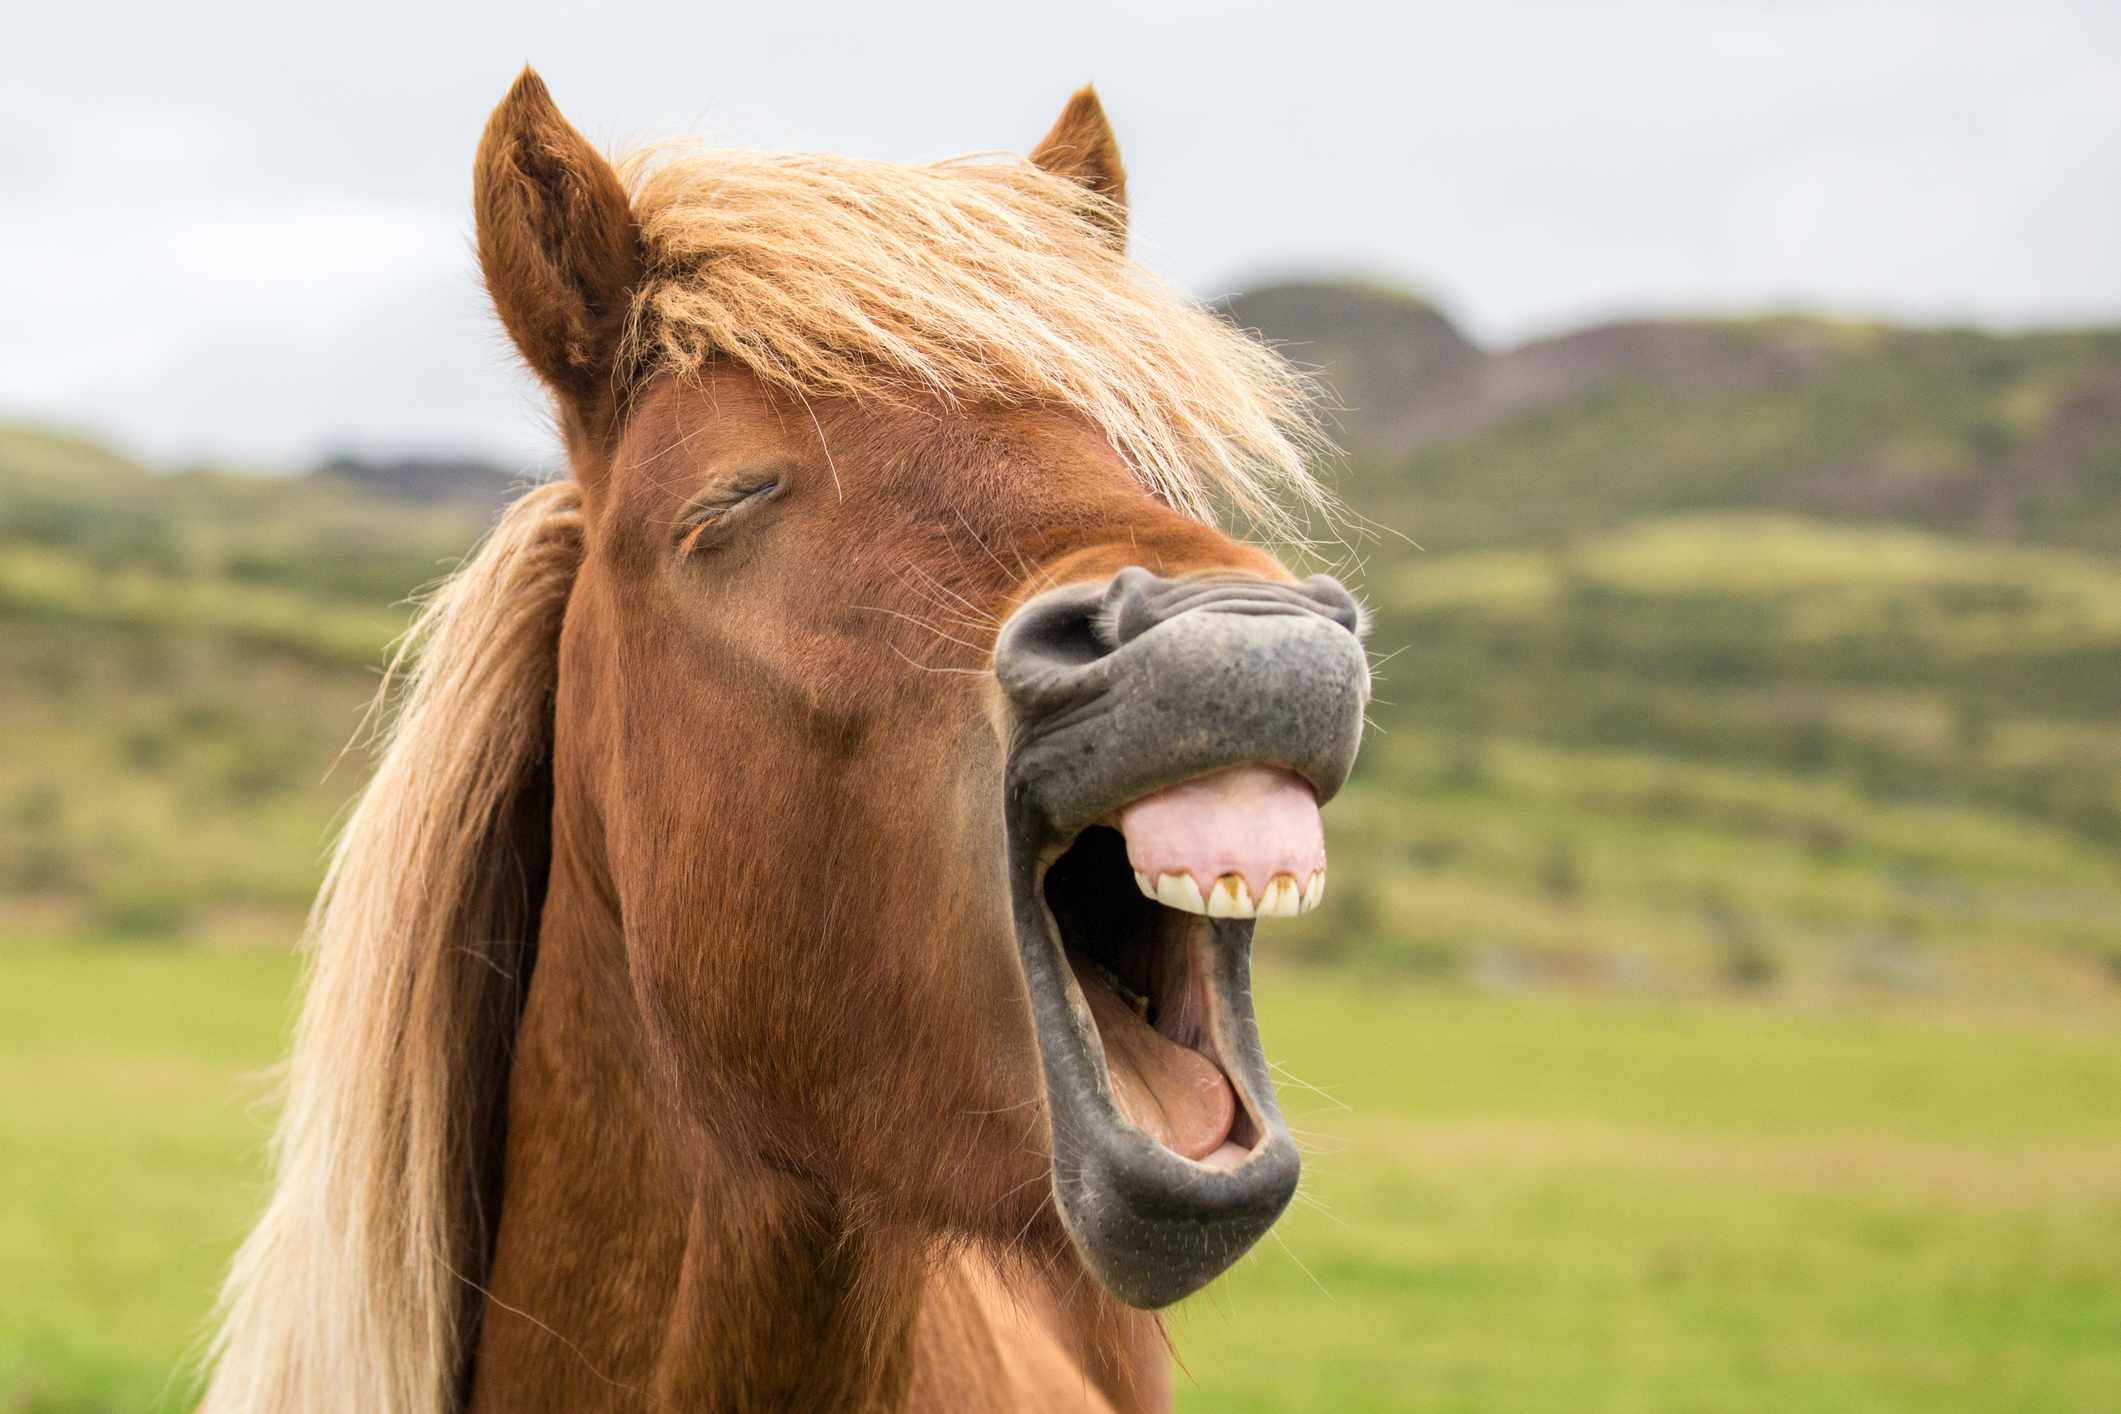 close up of horse face with mouth open showing small teeth